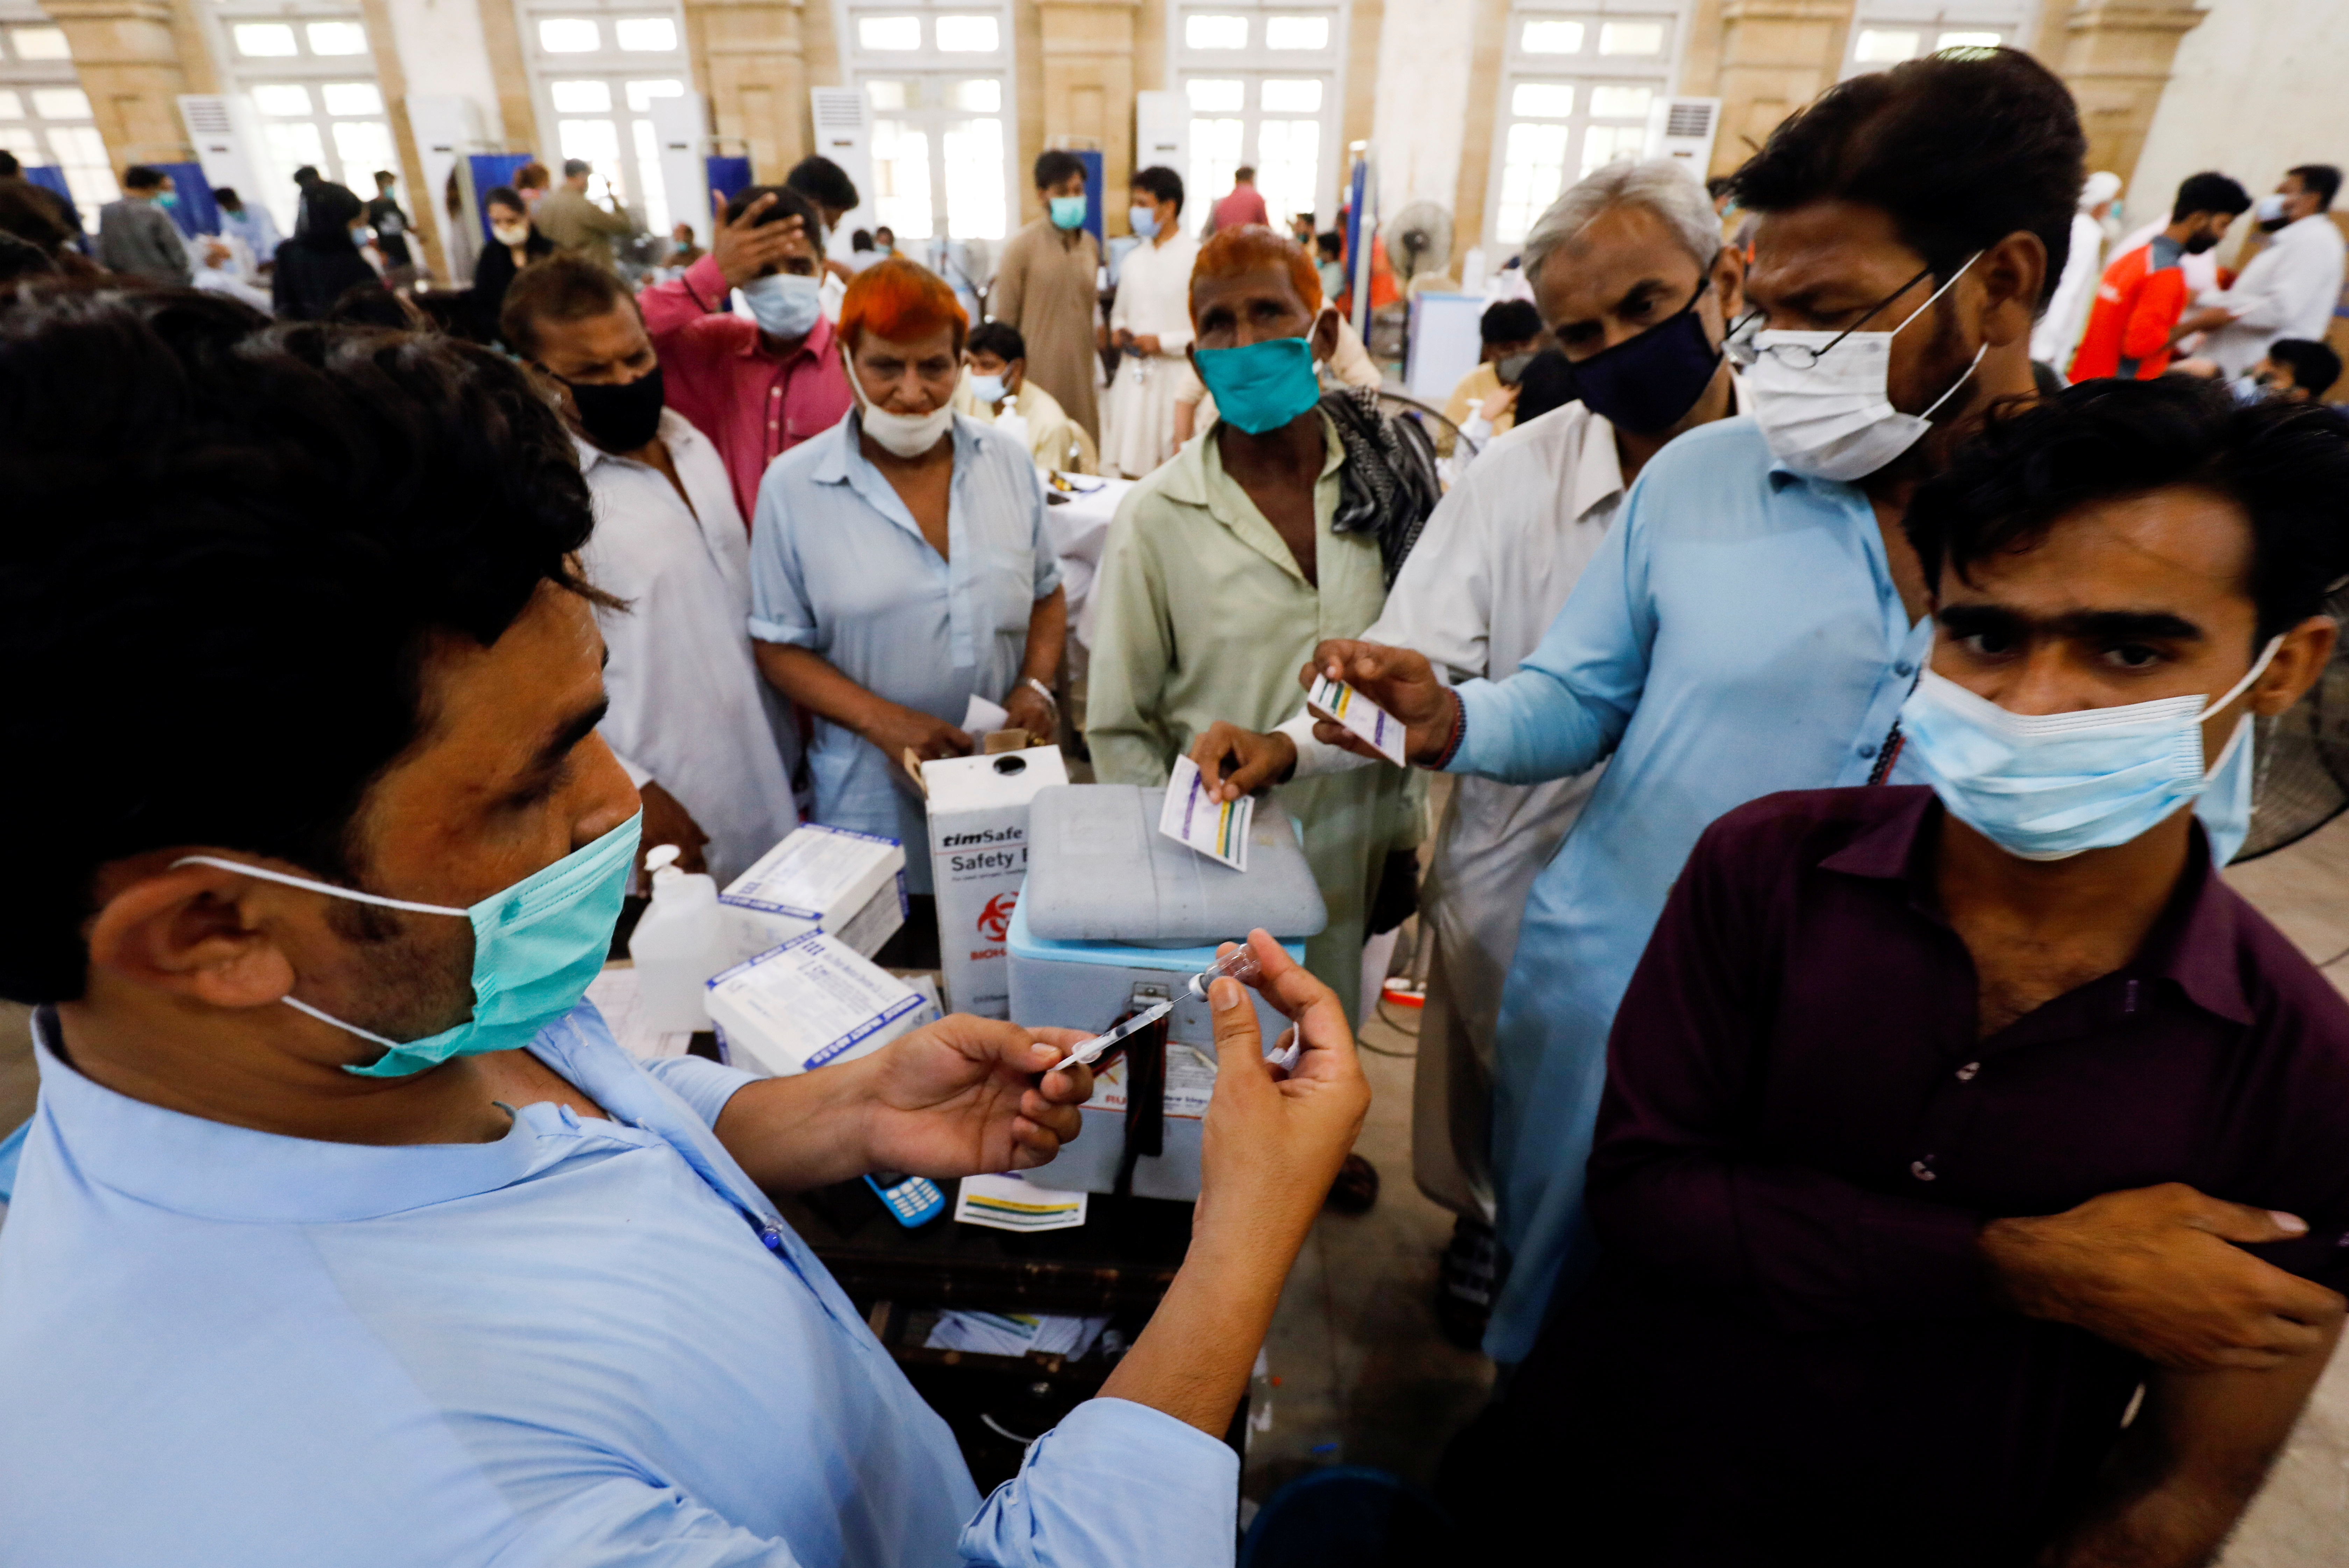 Residents with their registration cards gather at a counter to receive a dose of coronavirus disease (COVID-19) vaccine at a vaccination center in Karachi, Pakistan June 9, 2021. REUTERS/Akhtar Soomro